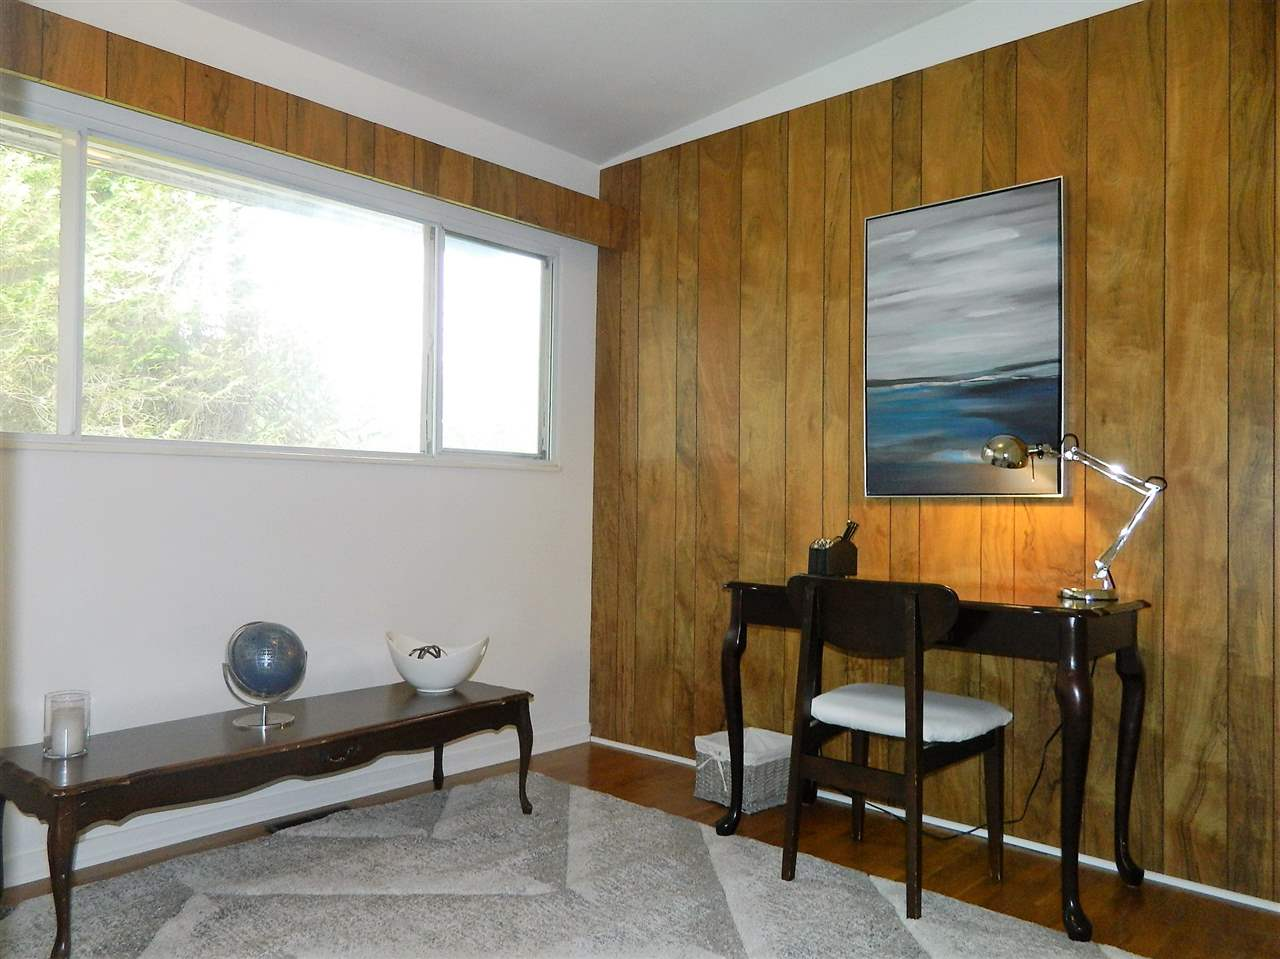 Photo 12: 21643 RIVER Road in Maple Ridge: West Central House for sale : MLS(r) # R2178356